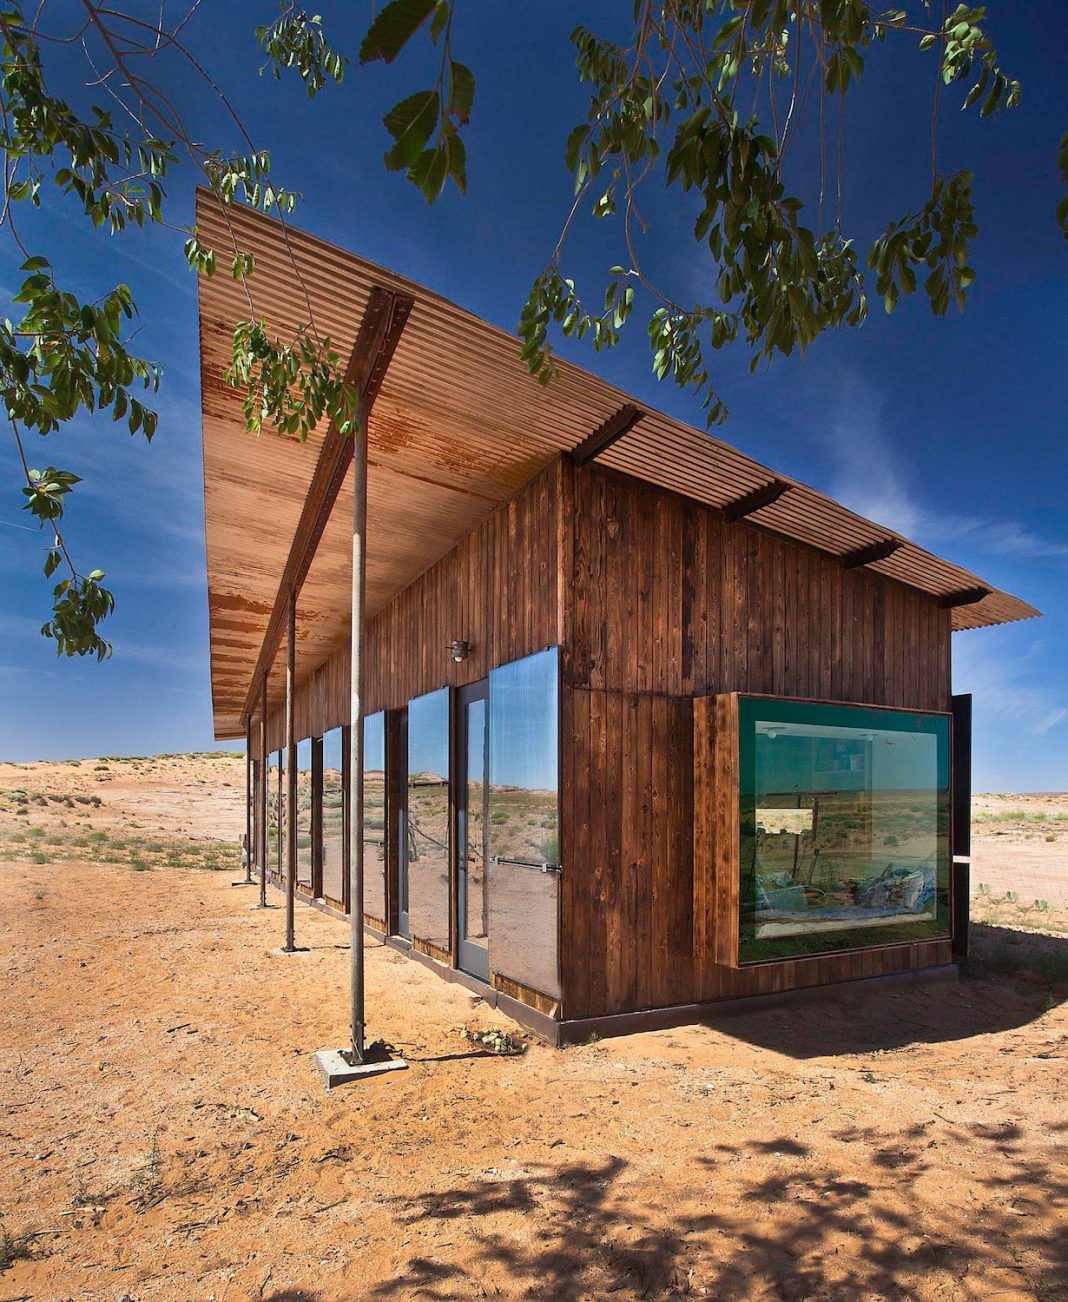 The Nakai residence in the middle of the desert, constructed for Lorraine Nakai